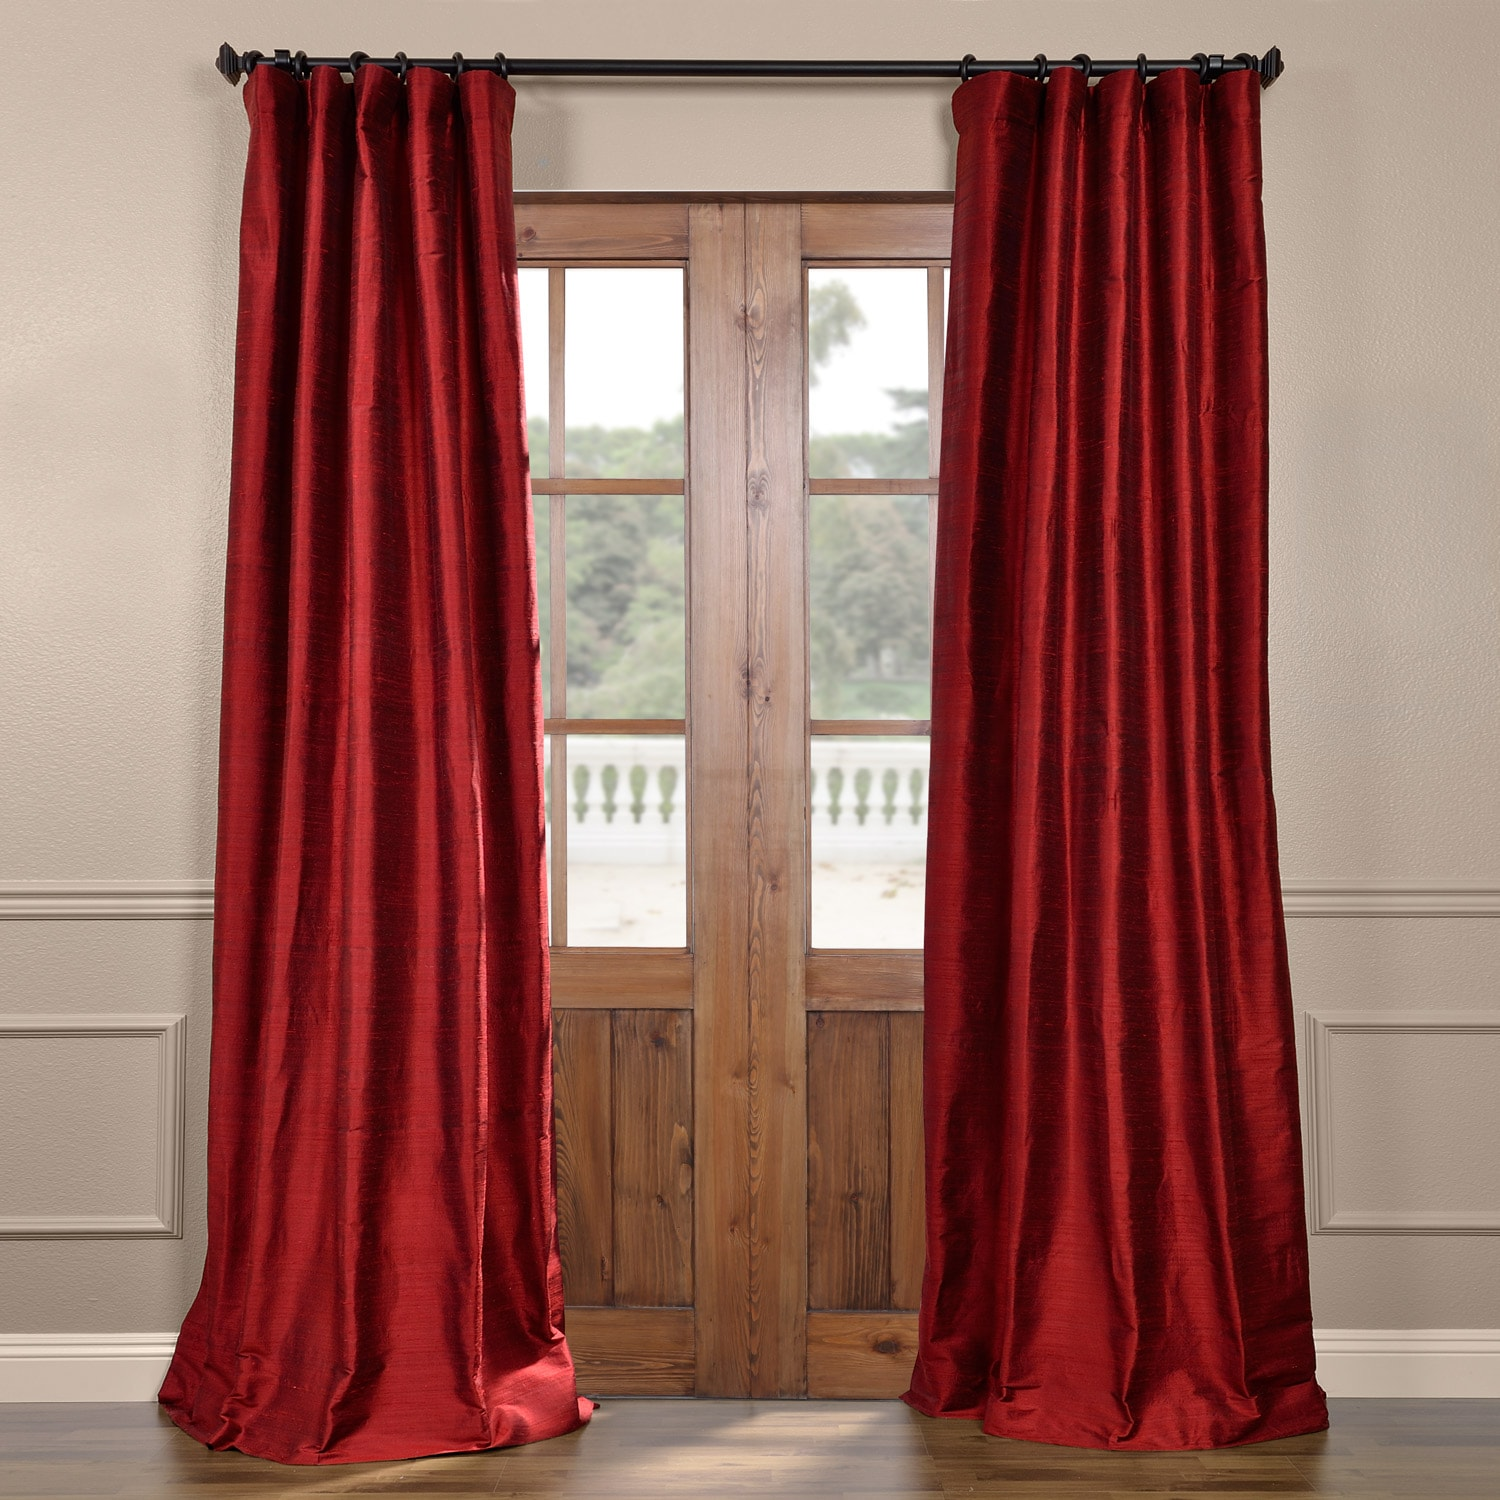 width curtainworks silk peacock wide com large zoom drapery drape luxe lined empress loading drapes solid